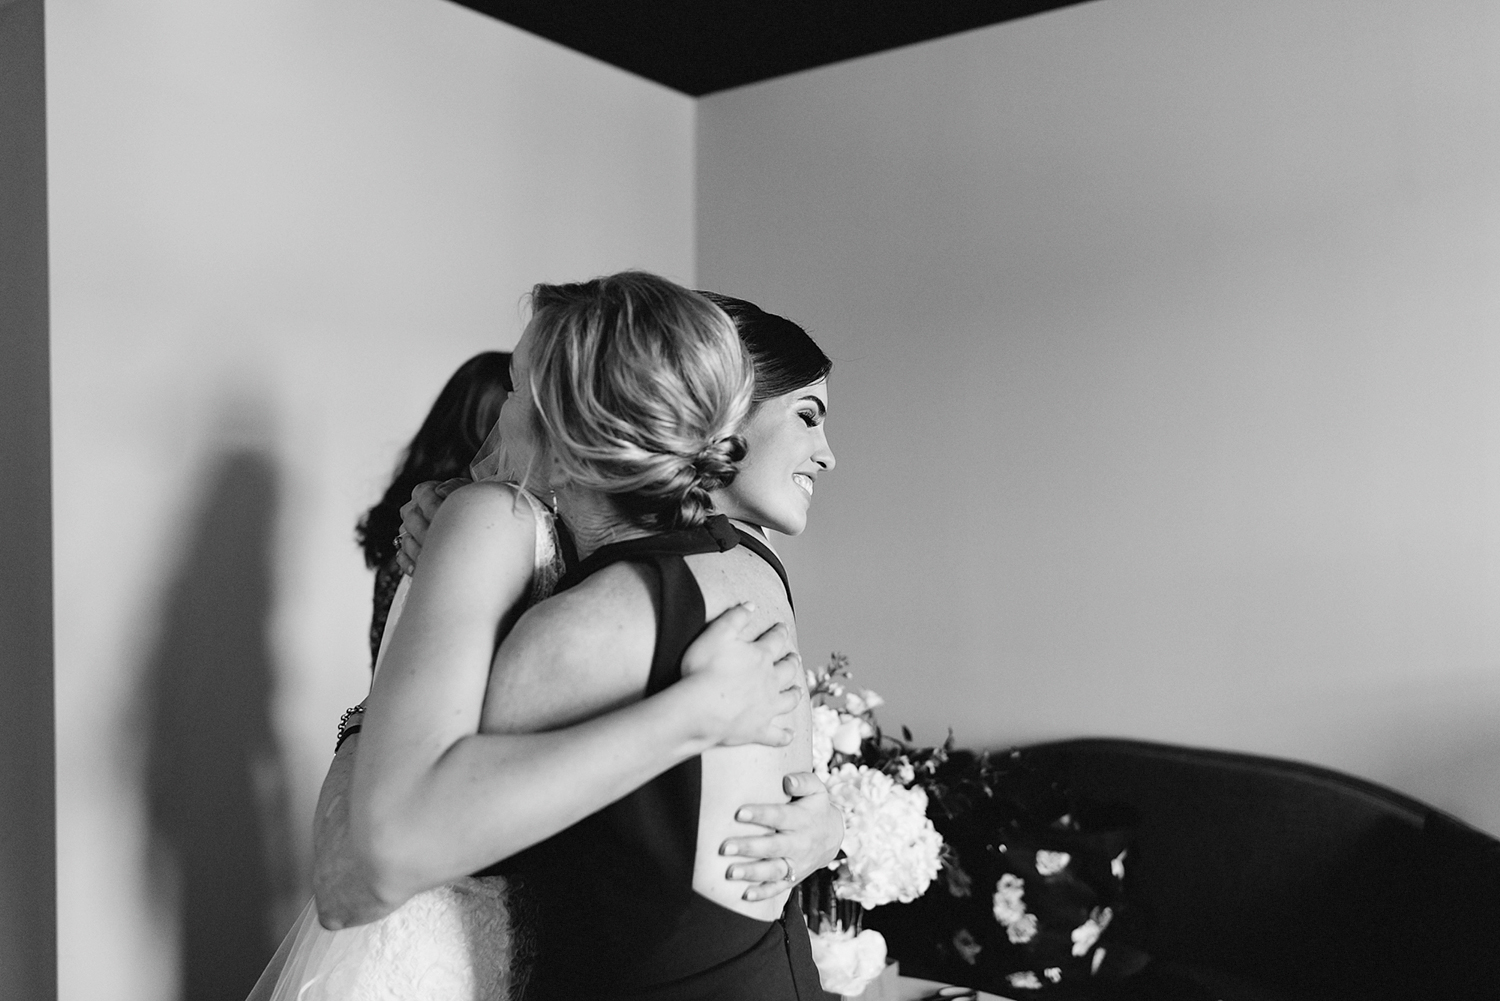 12-broadview-hotel-real-wedding-in-downtown-toronto-best-venues-broadview-hotel-wedding-photos-analog-wedding-photography-13.jpg